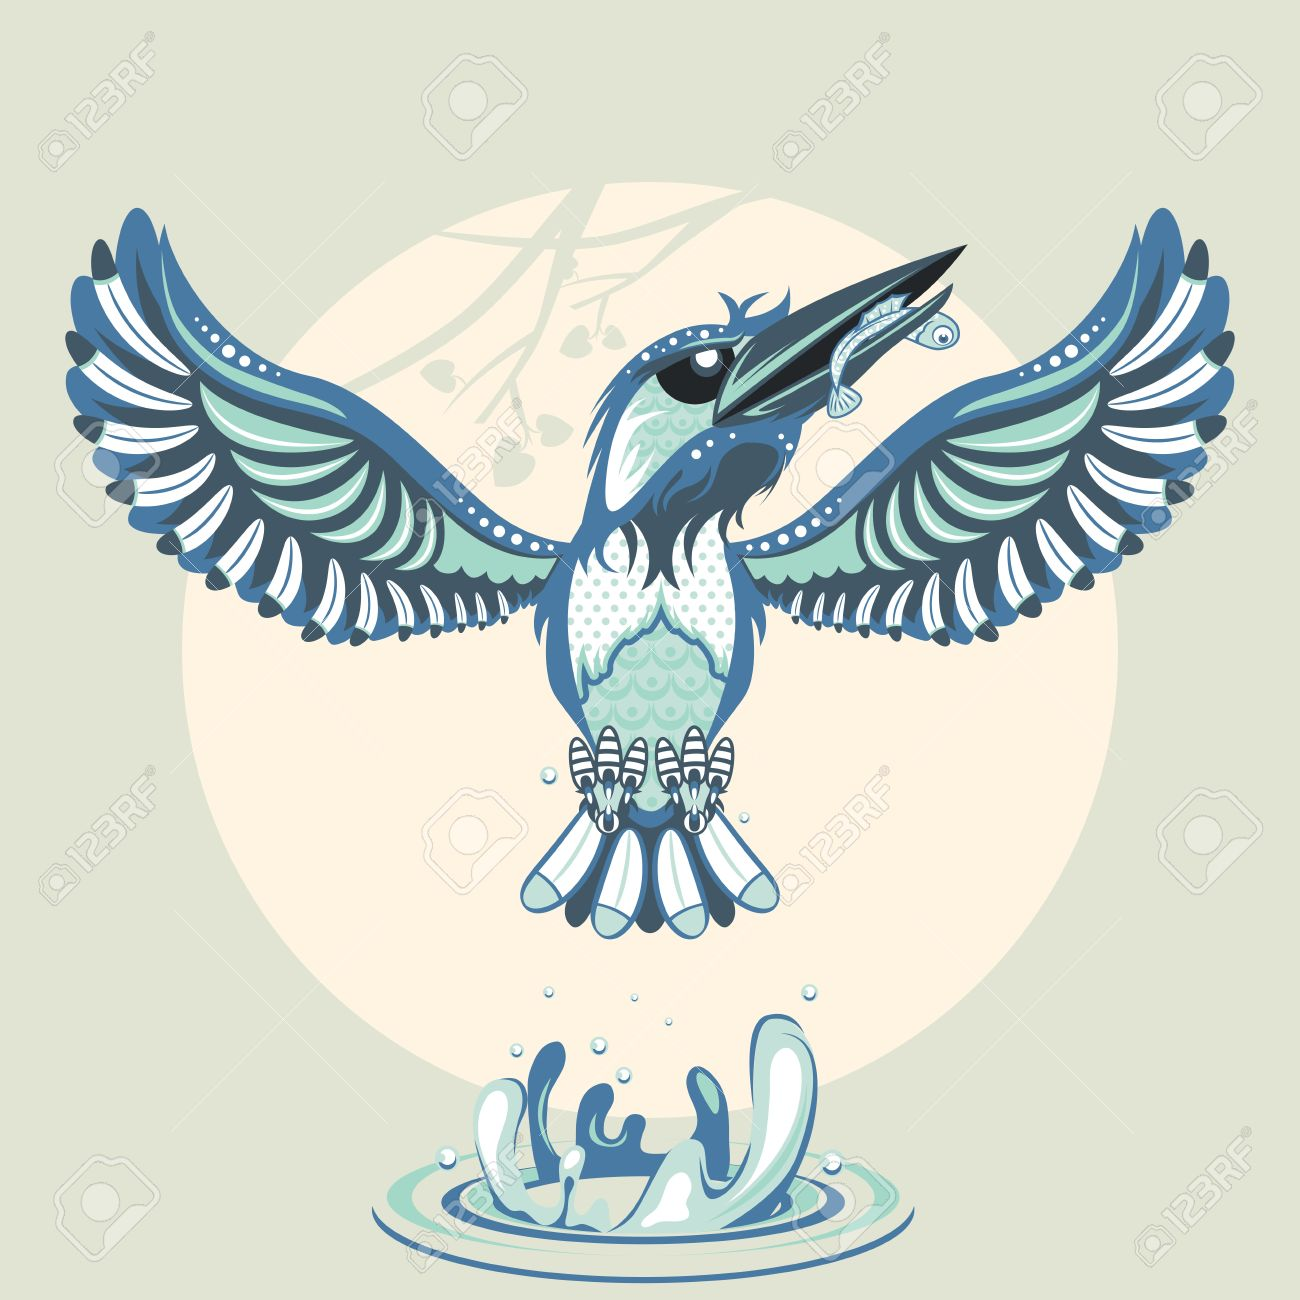 Freshwater Birds clipart #3, Download drawings